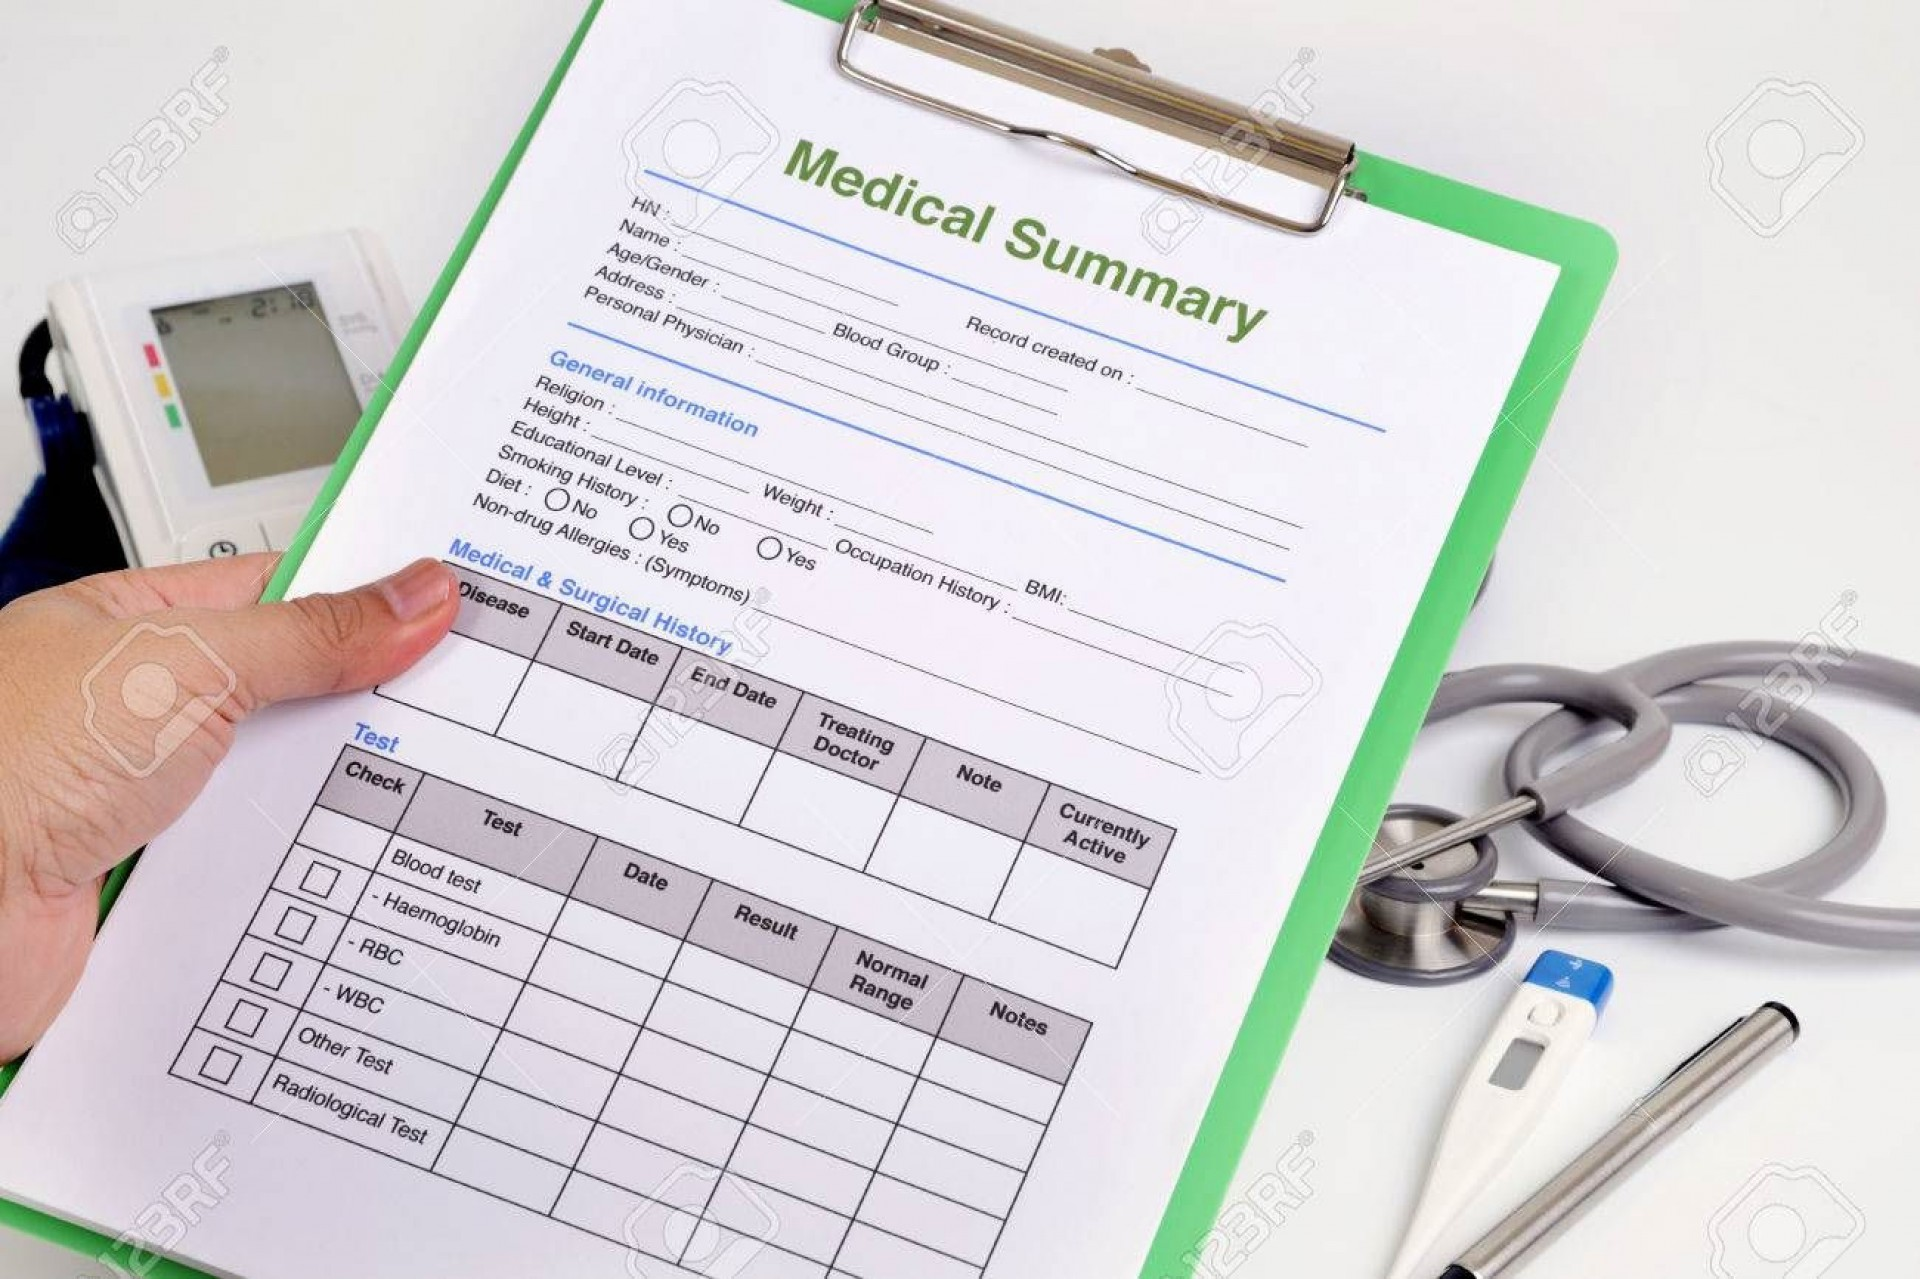 003 Fantastic Free Personal Medical History Template High Definition  Printable Form1920